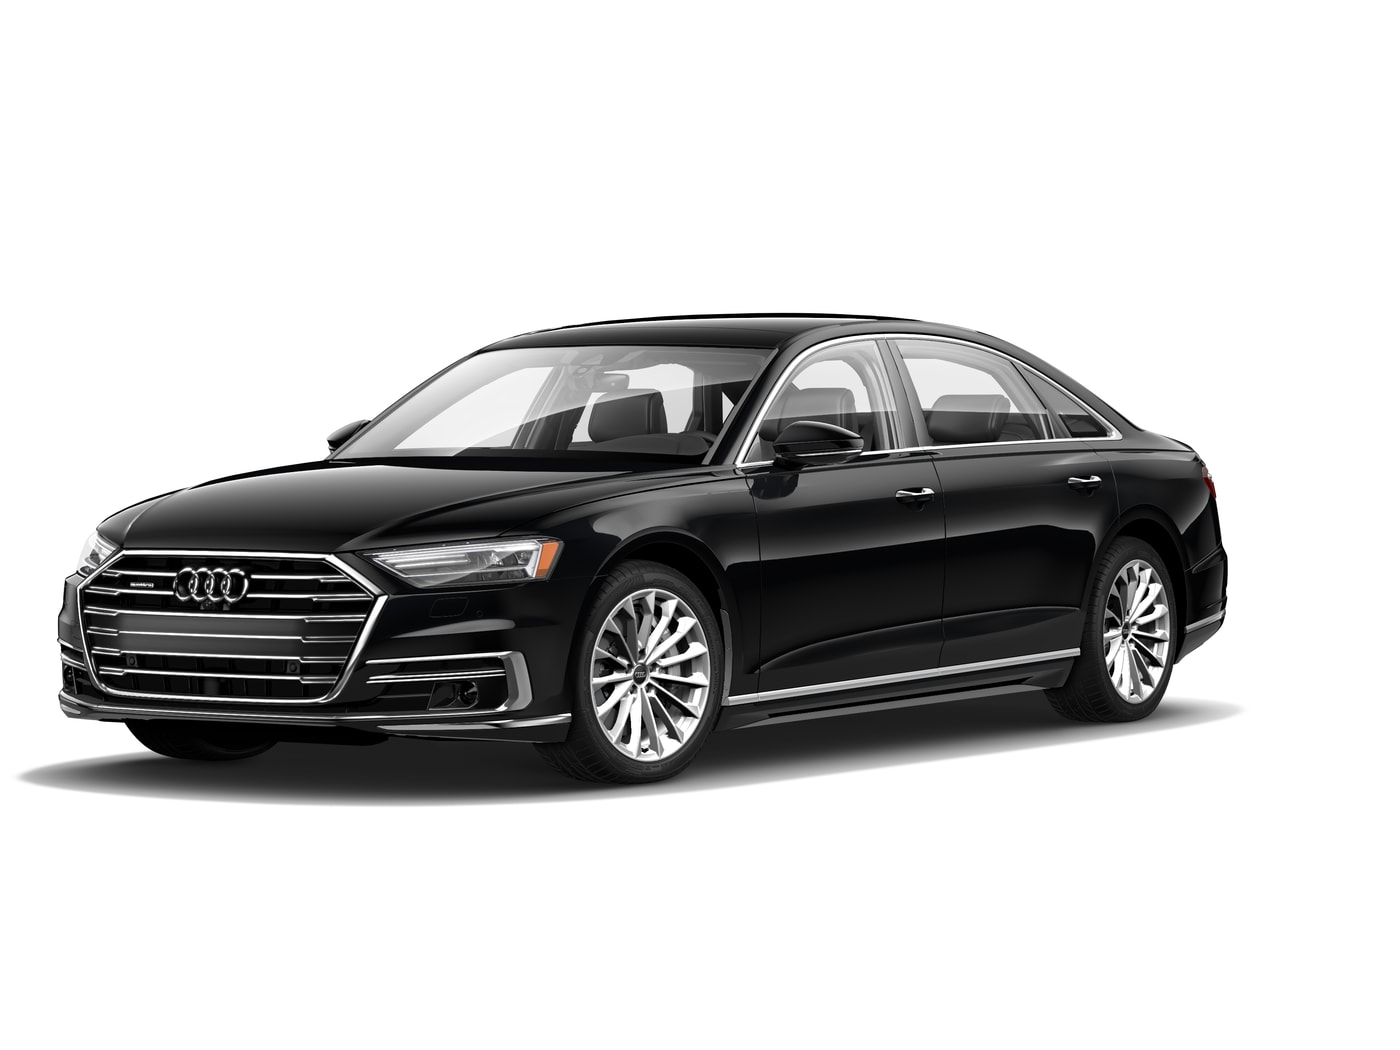 2019 Audi A8 vs. 2019 Lincoln Continental